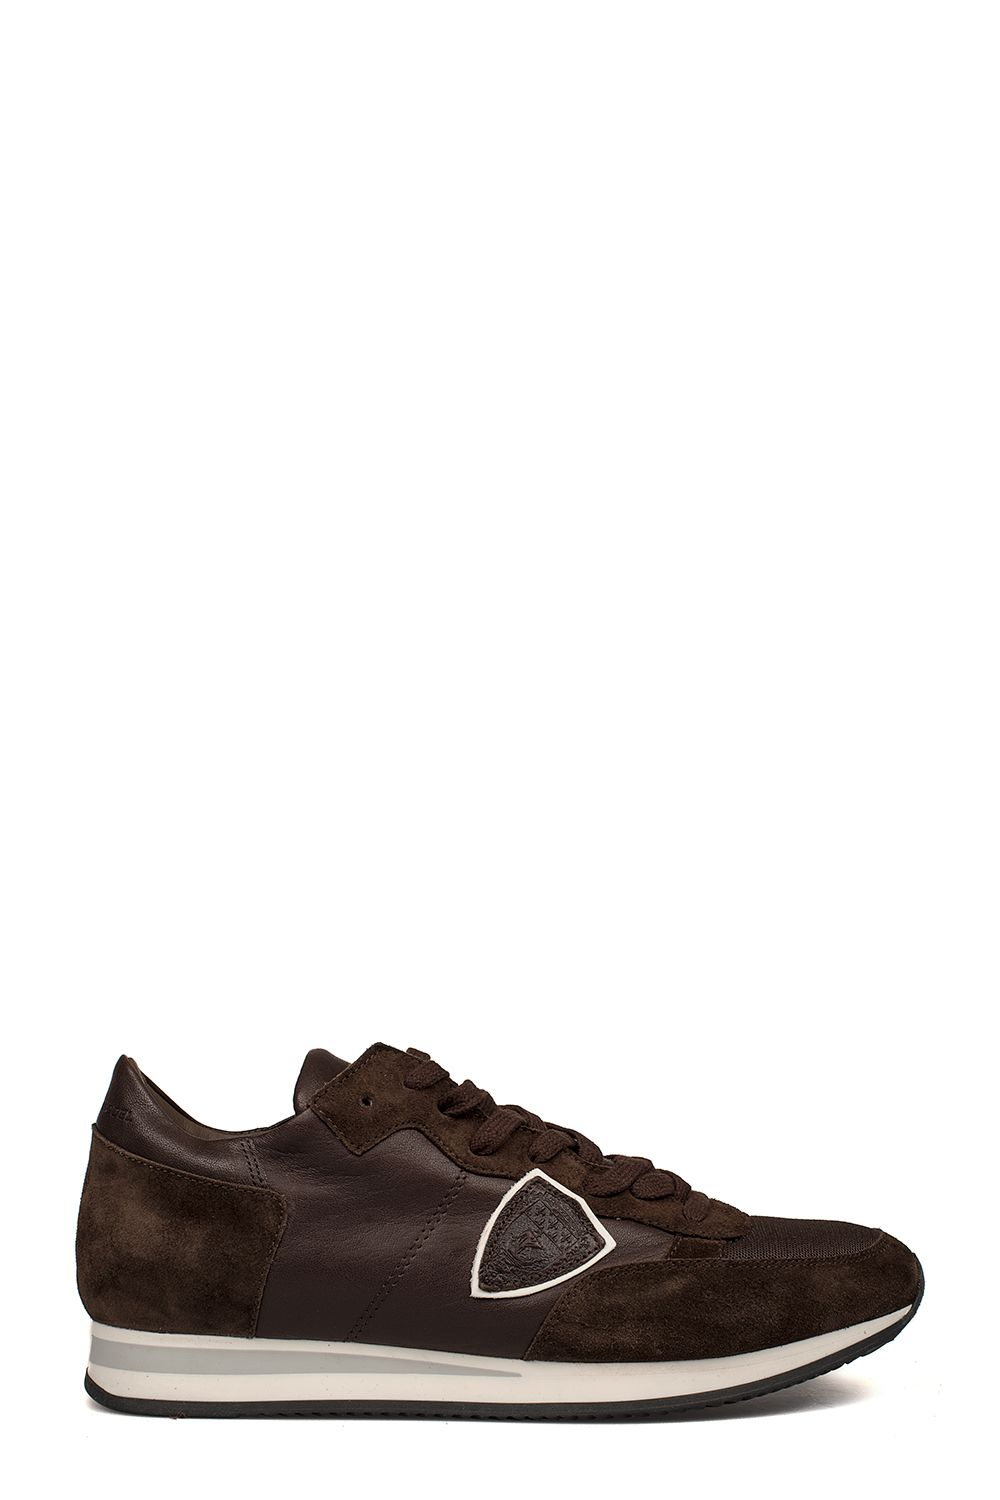 Brown Tropez Suede Leather Sneakers